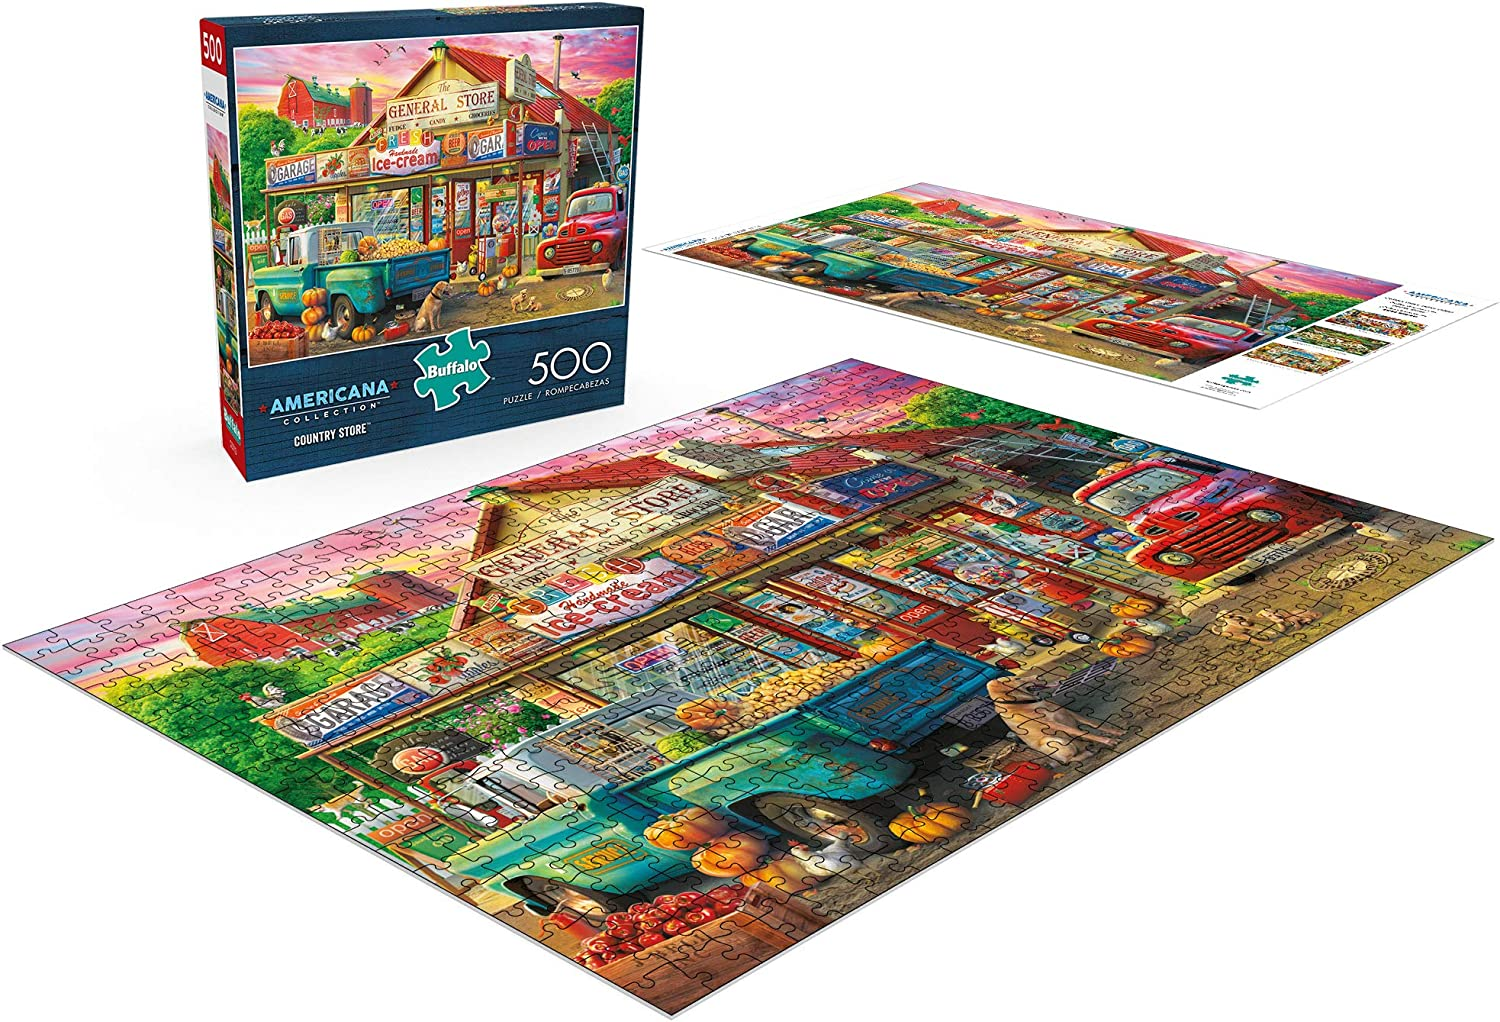 Country Store 500 Piece Jigsaw Puzzle 3721 Americana Collection Buffalo Games